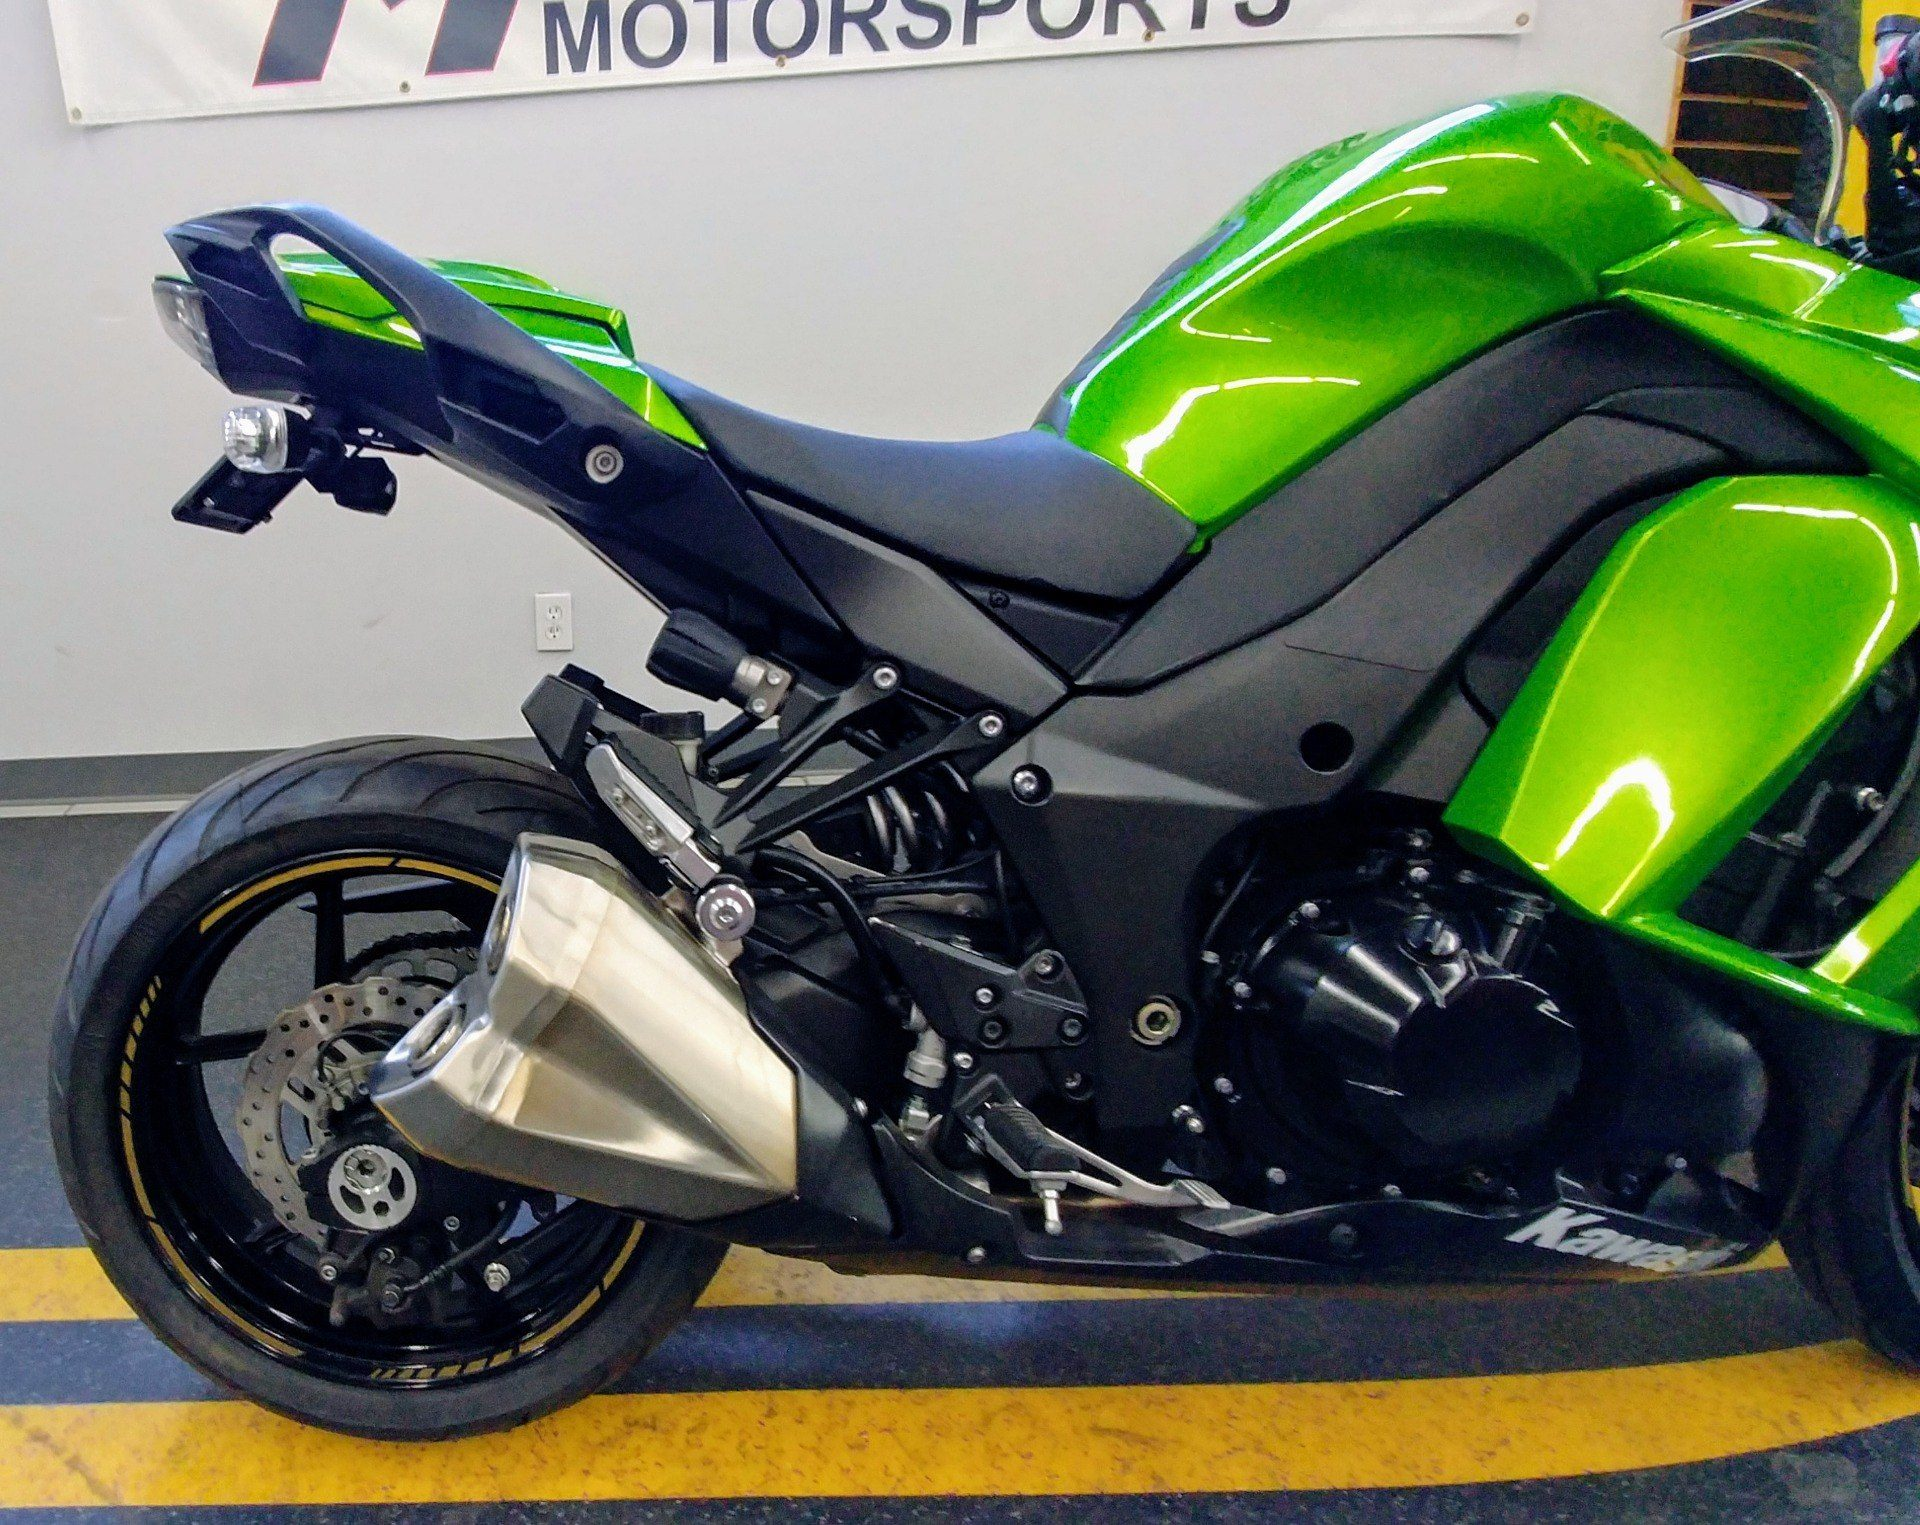 2014 Kawasaki Ninja® 1000 ABS in Ontario, California